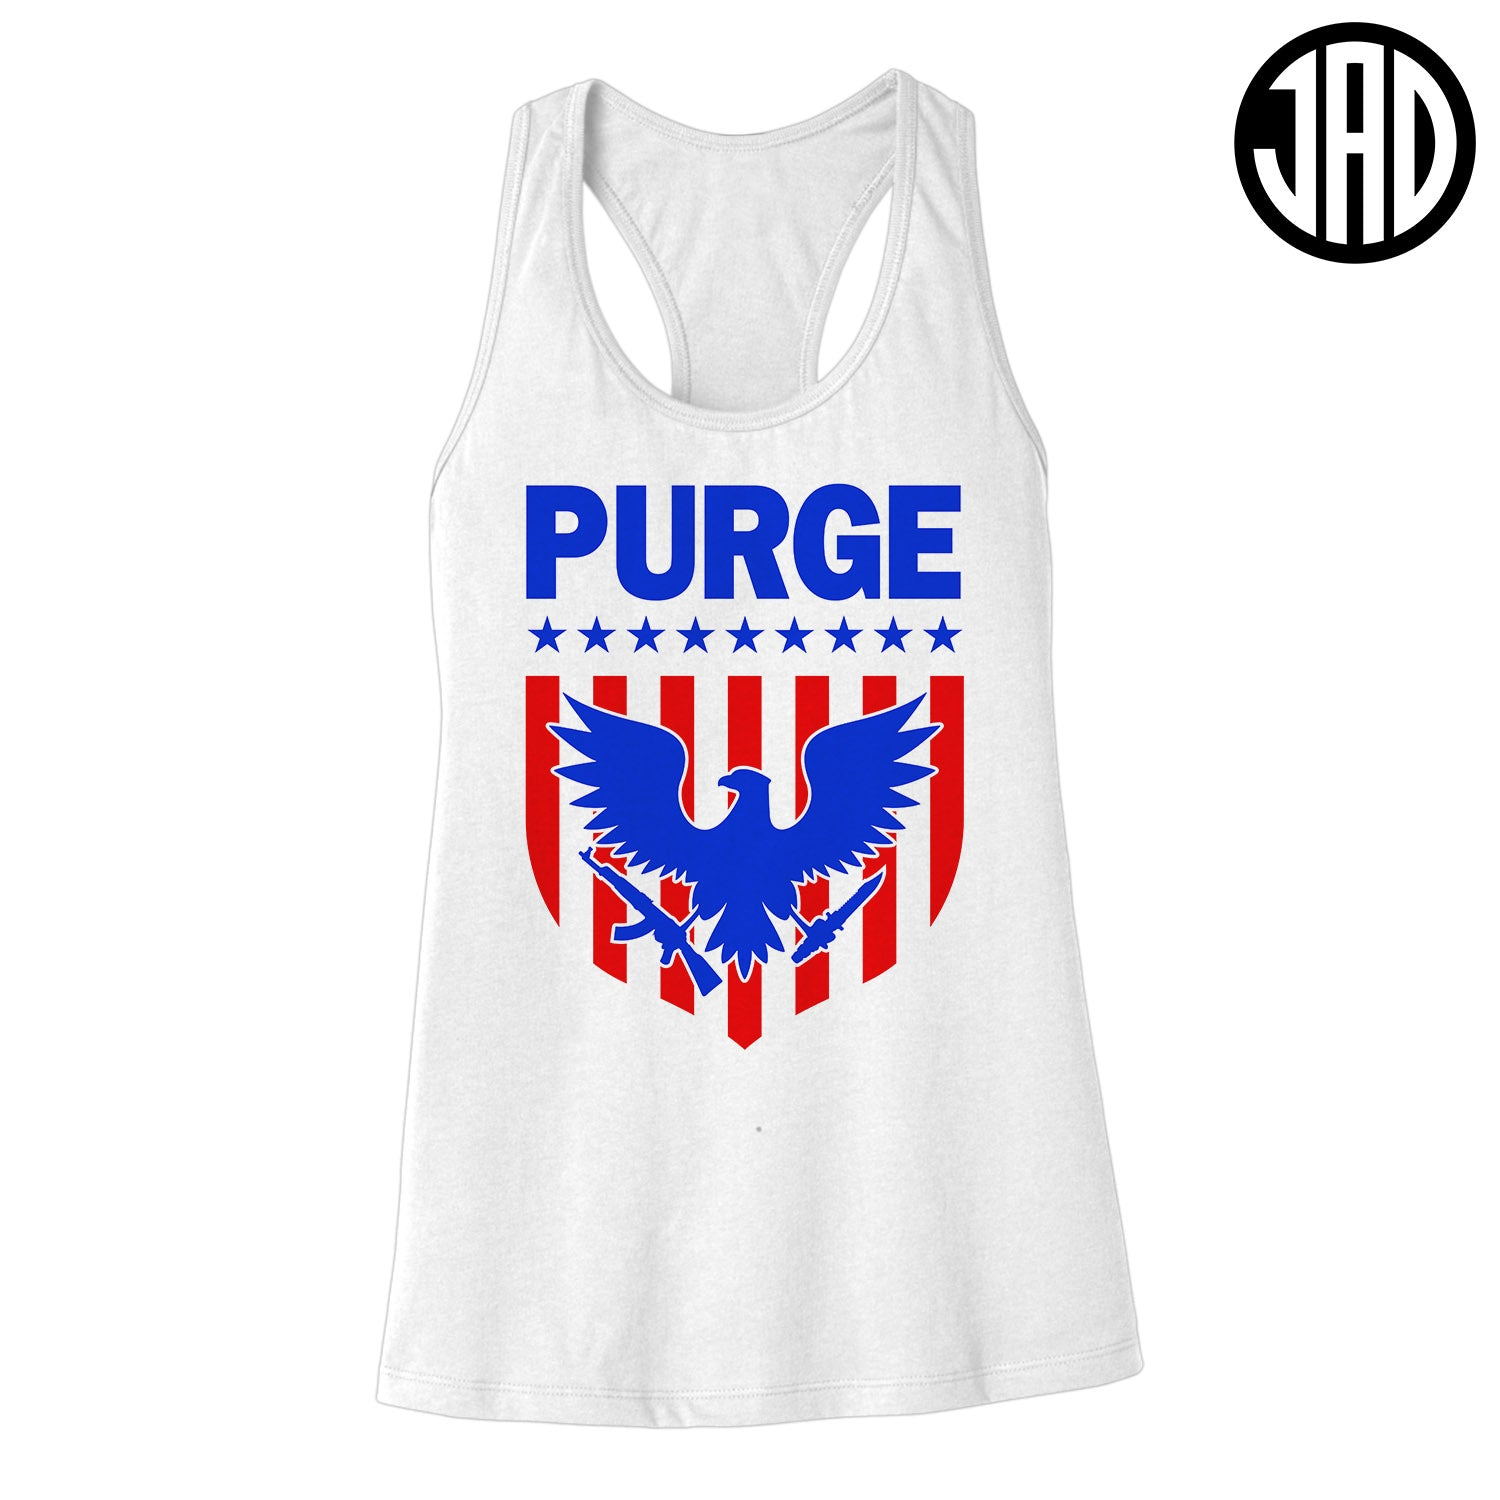 Purge Shield - Women's Racerback Tank